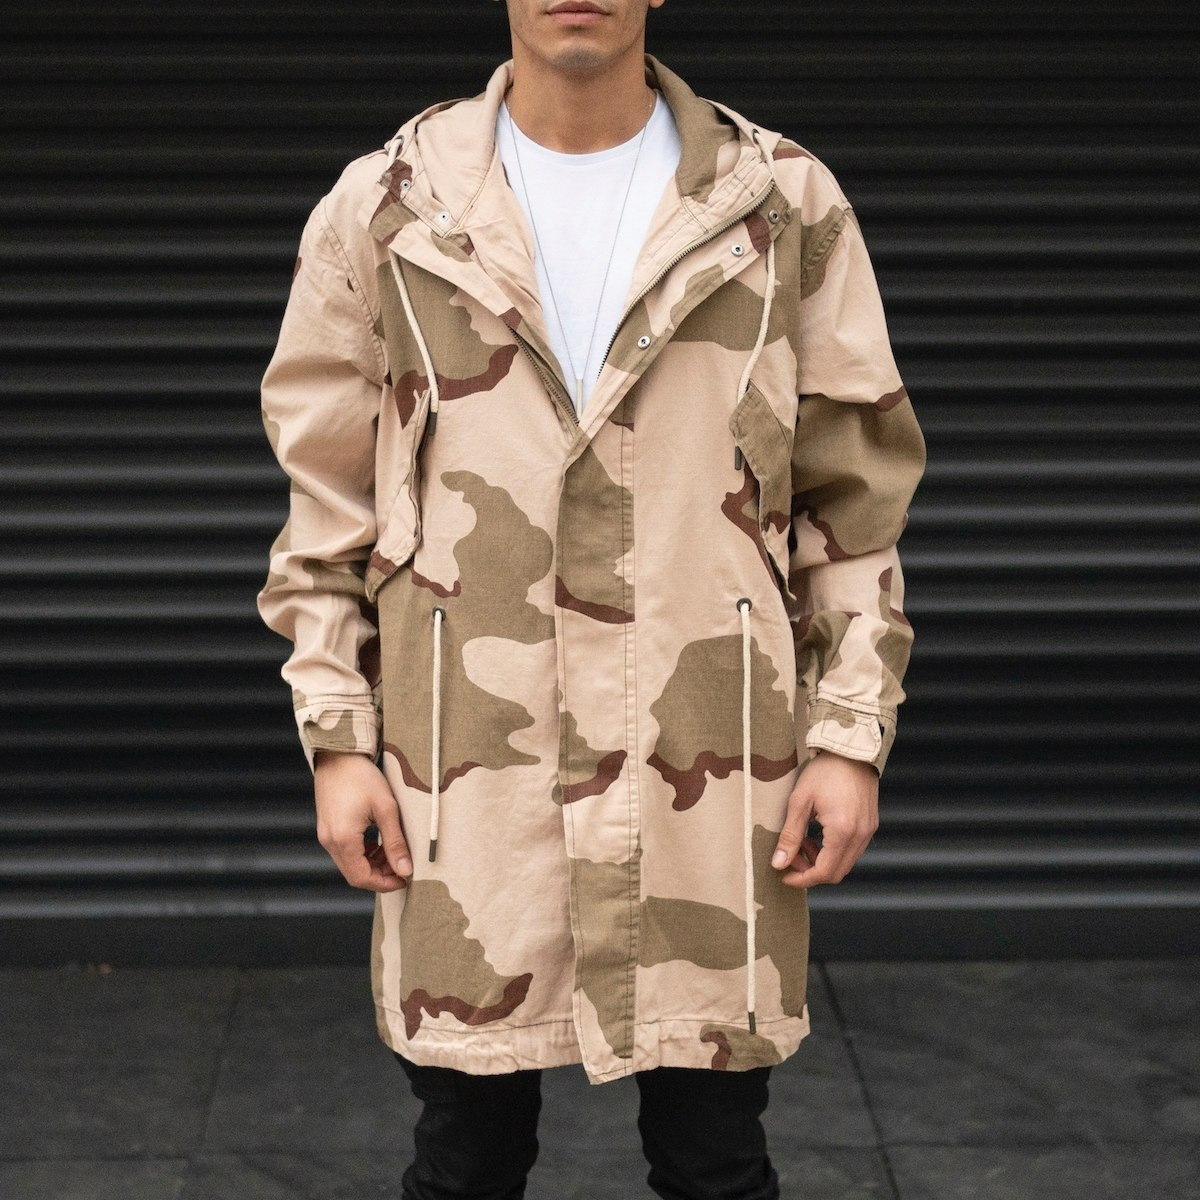 Men's Desert Camo Patterned Coat In Cream